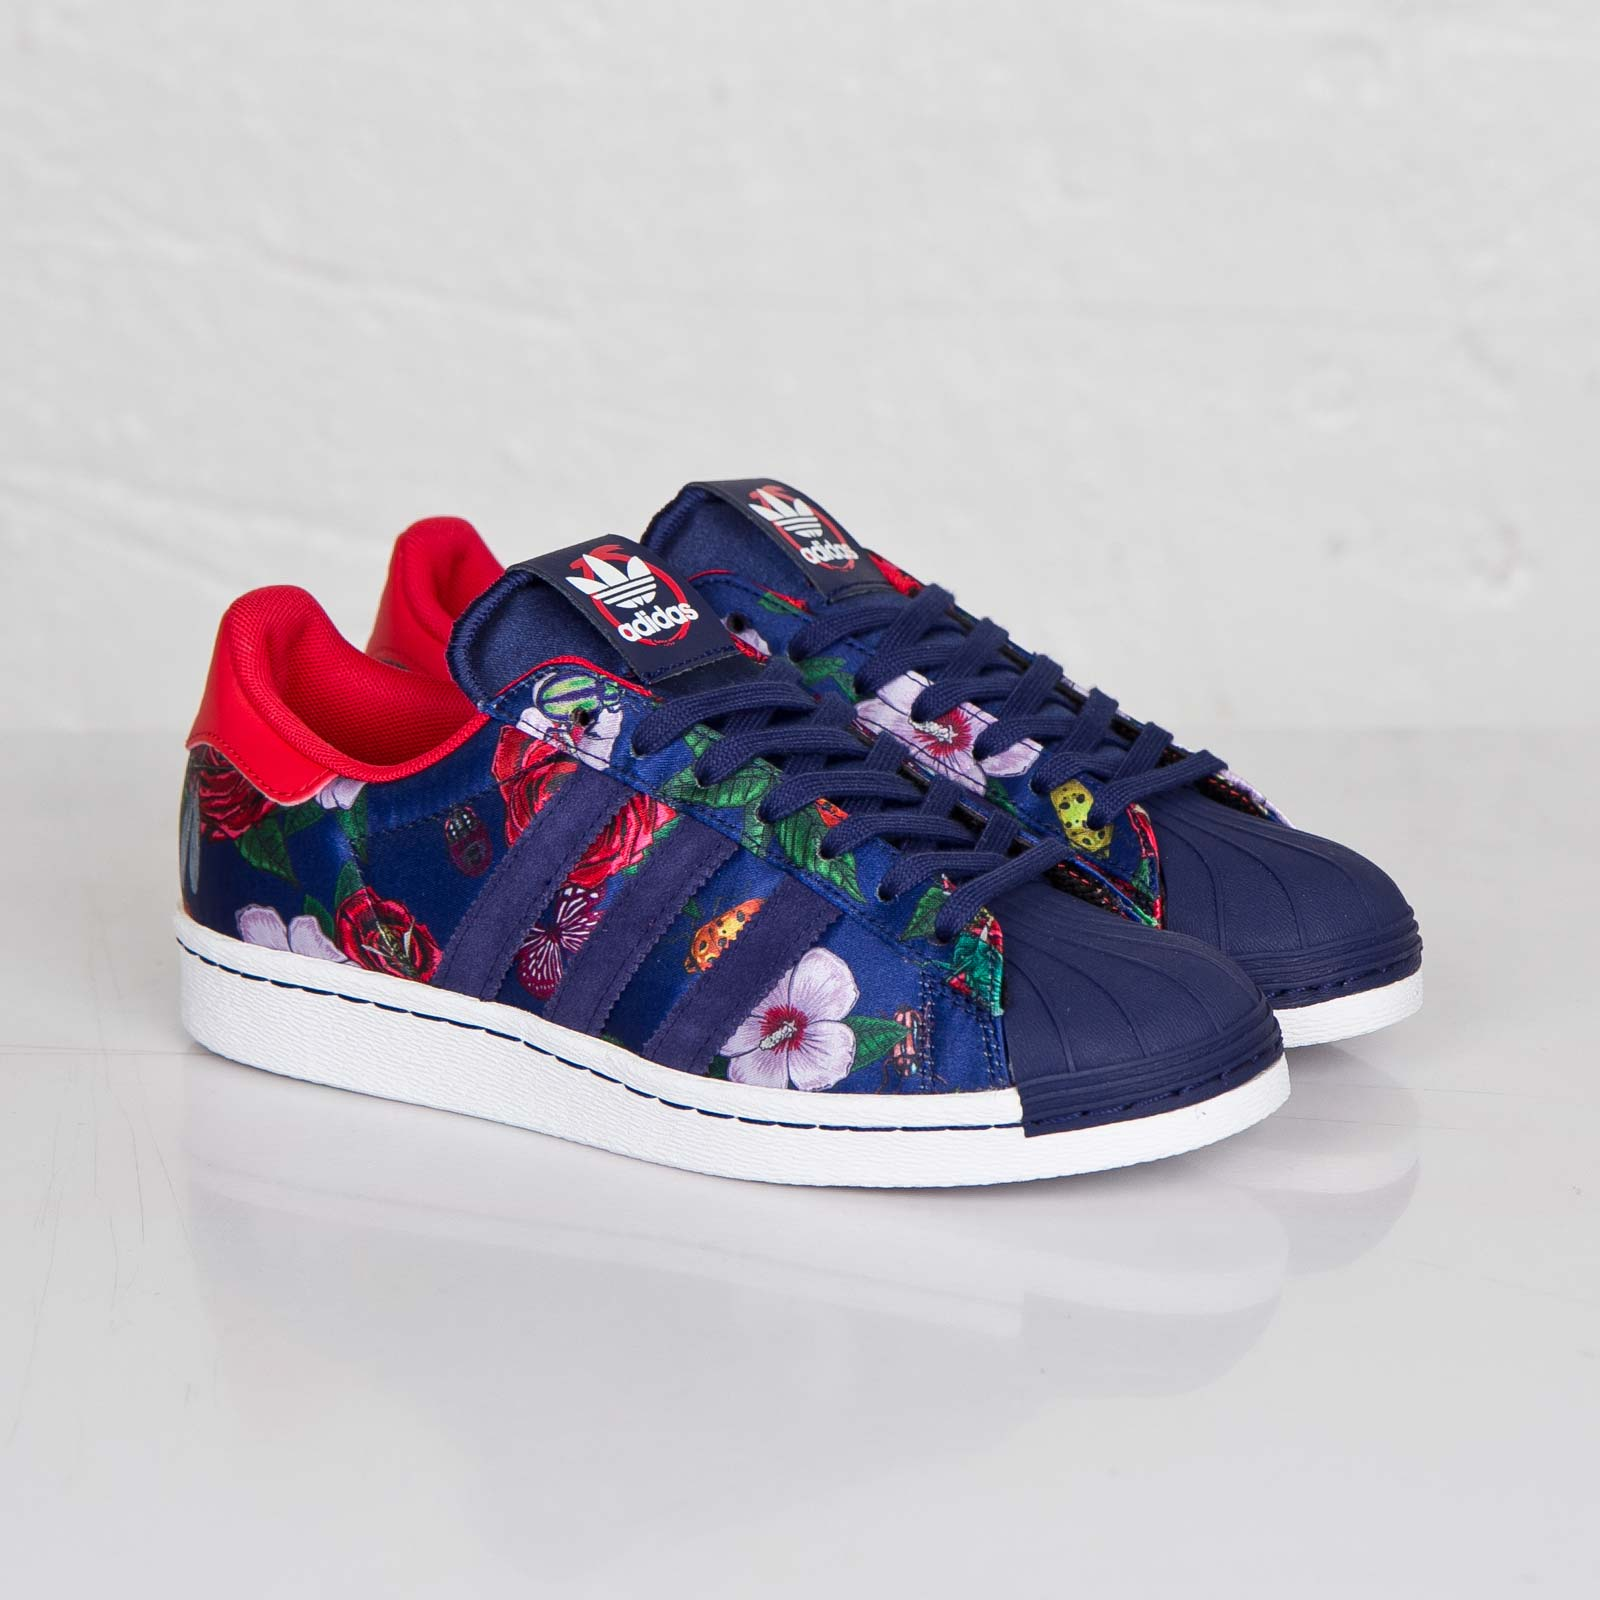 promo code e291a 2ab7e adidas Superstar 80s W - M19071 - Sneakersnstuff | sneakers ...